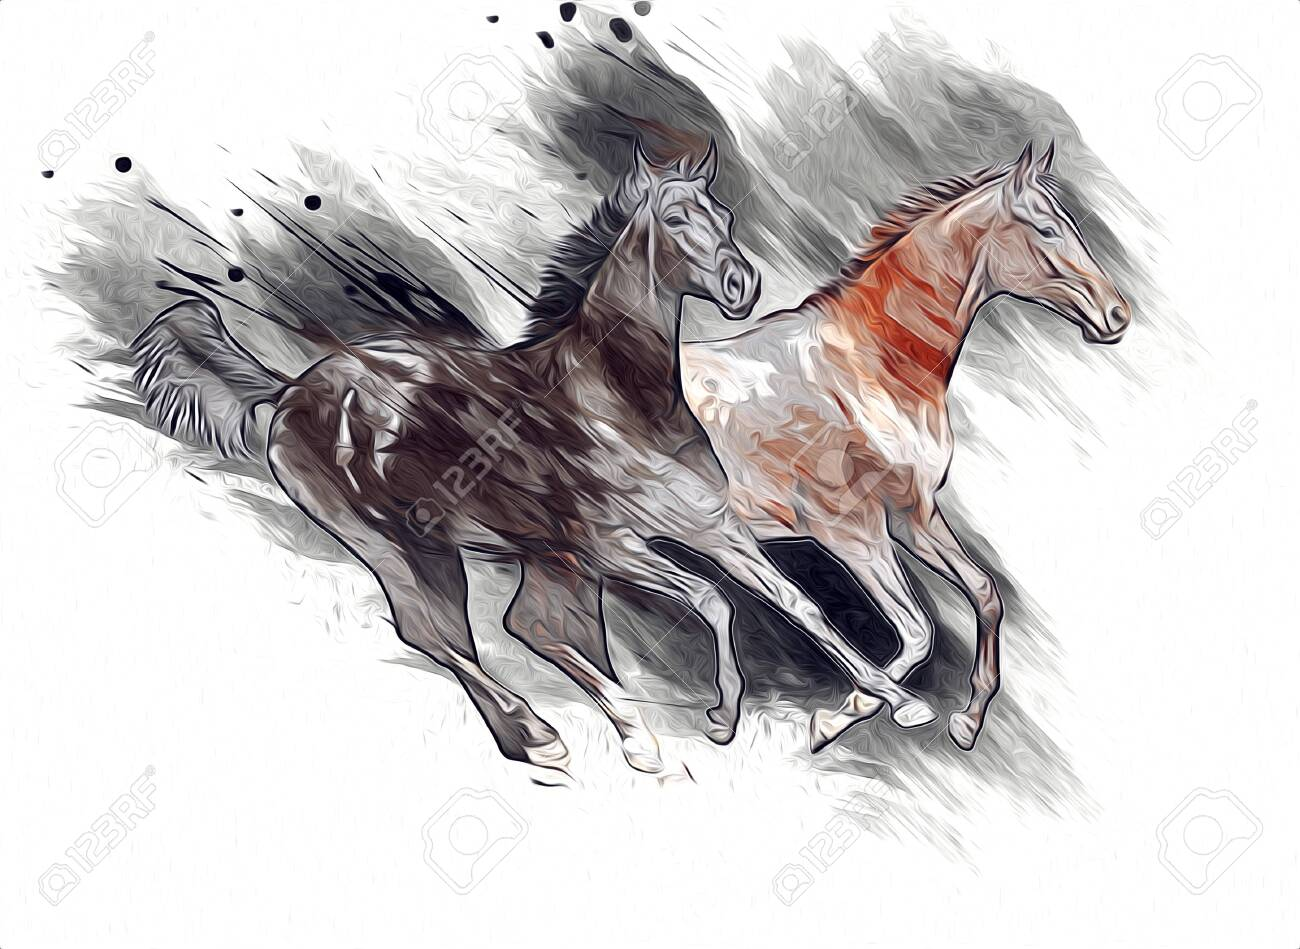 Colorful Horse Art Illustration Grunge Painting Stock Photo Picture And Royalty Free Image Image 151636489